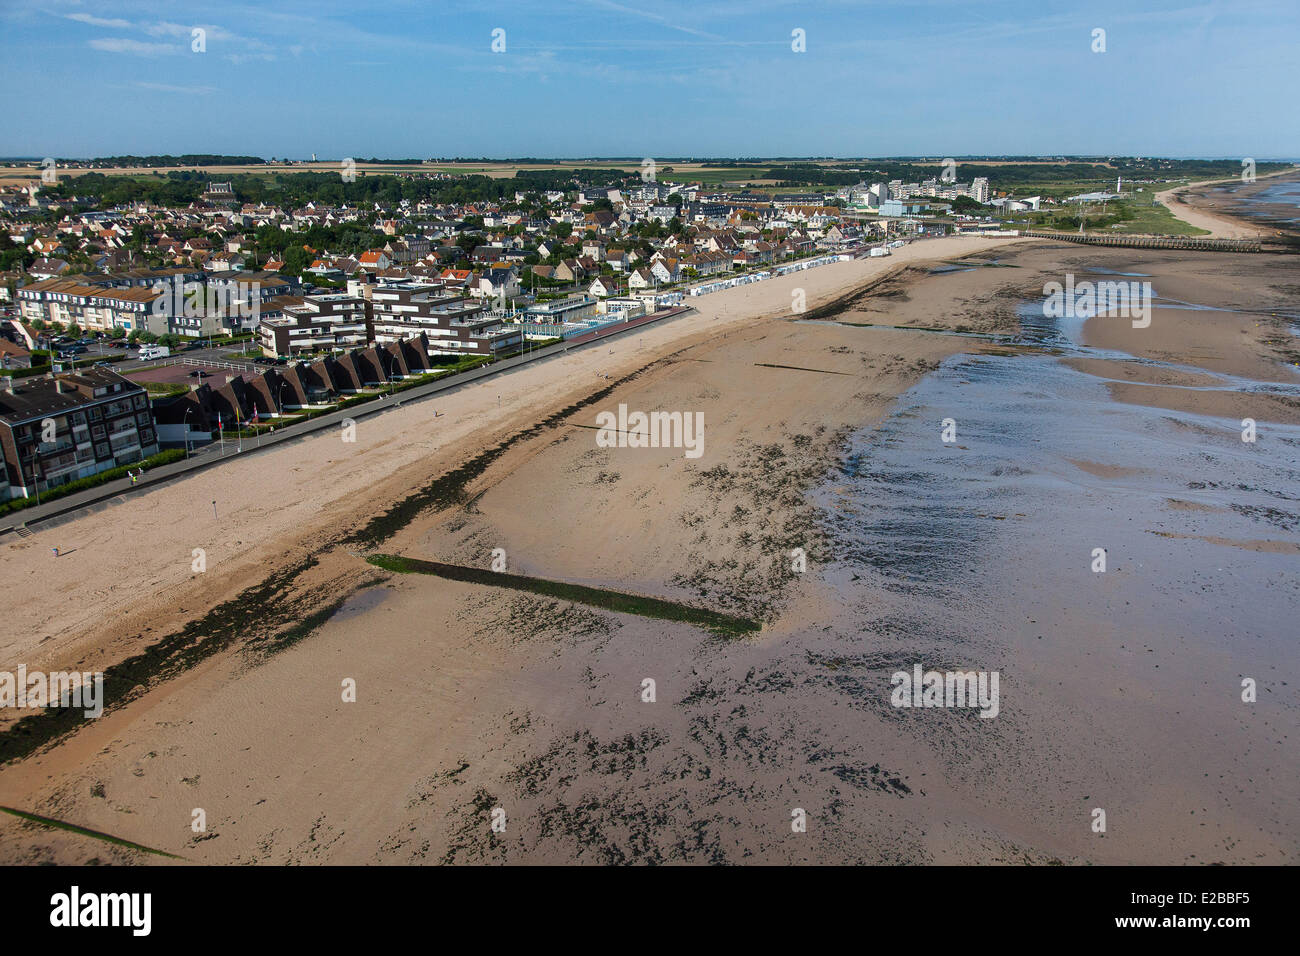 france calvados courseulles sur mer juno beach aerial view stock photo royalty free image. Black Bedroom Furniture Sets. Home Design Ideas